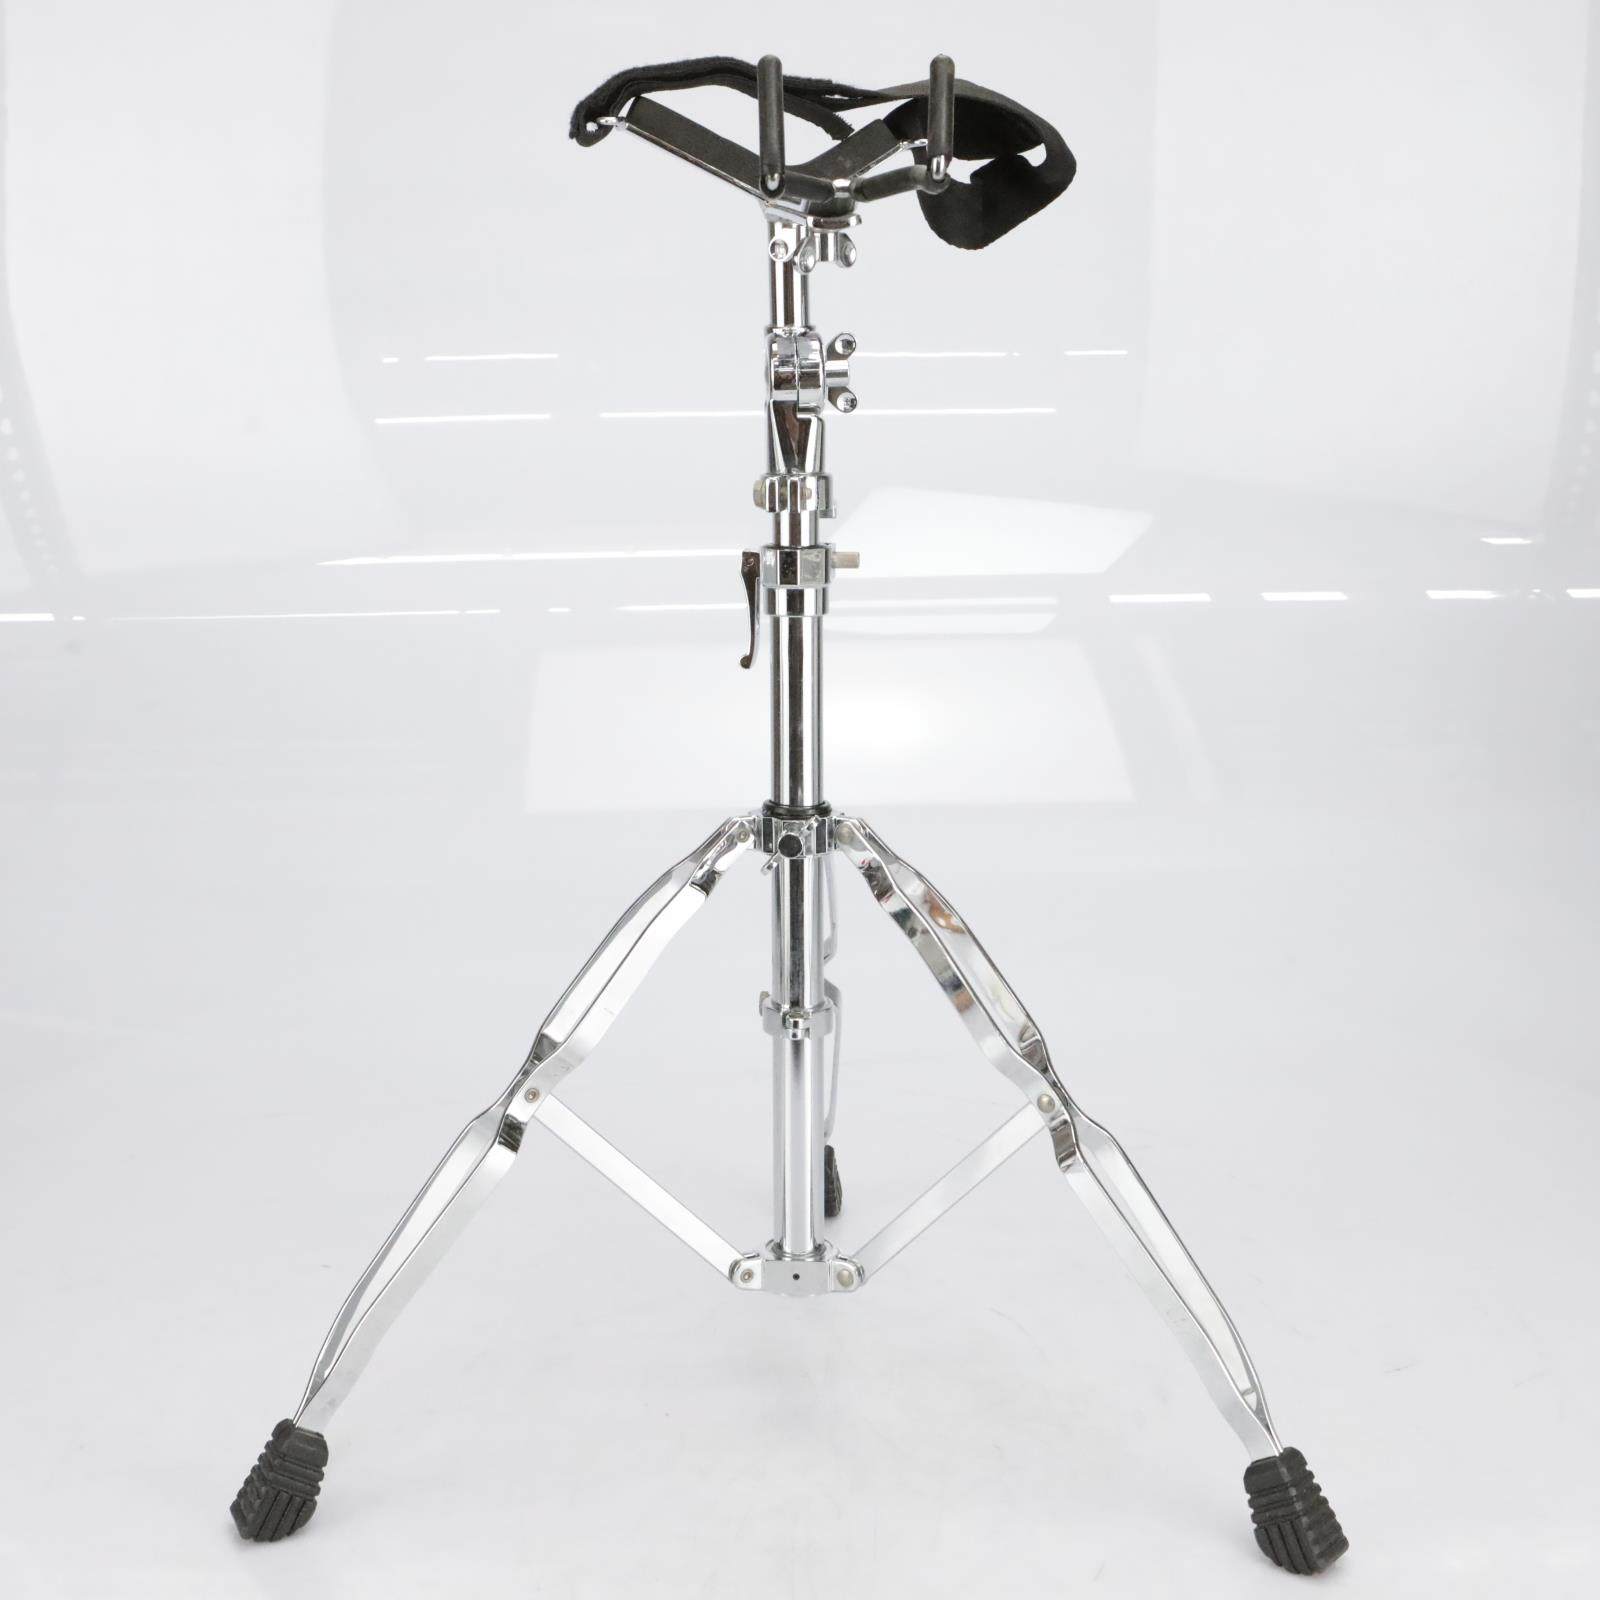 Meinl TMD Percussion Professional Djembe Stand Drum Hardware Chrome #41134